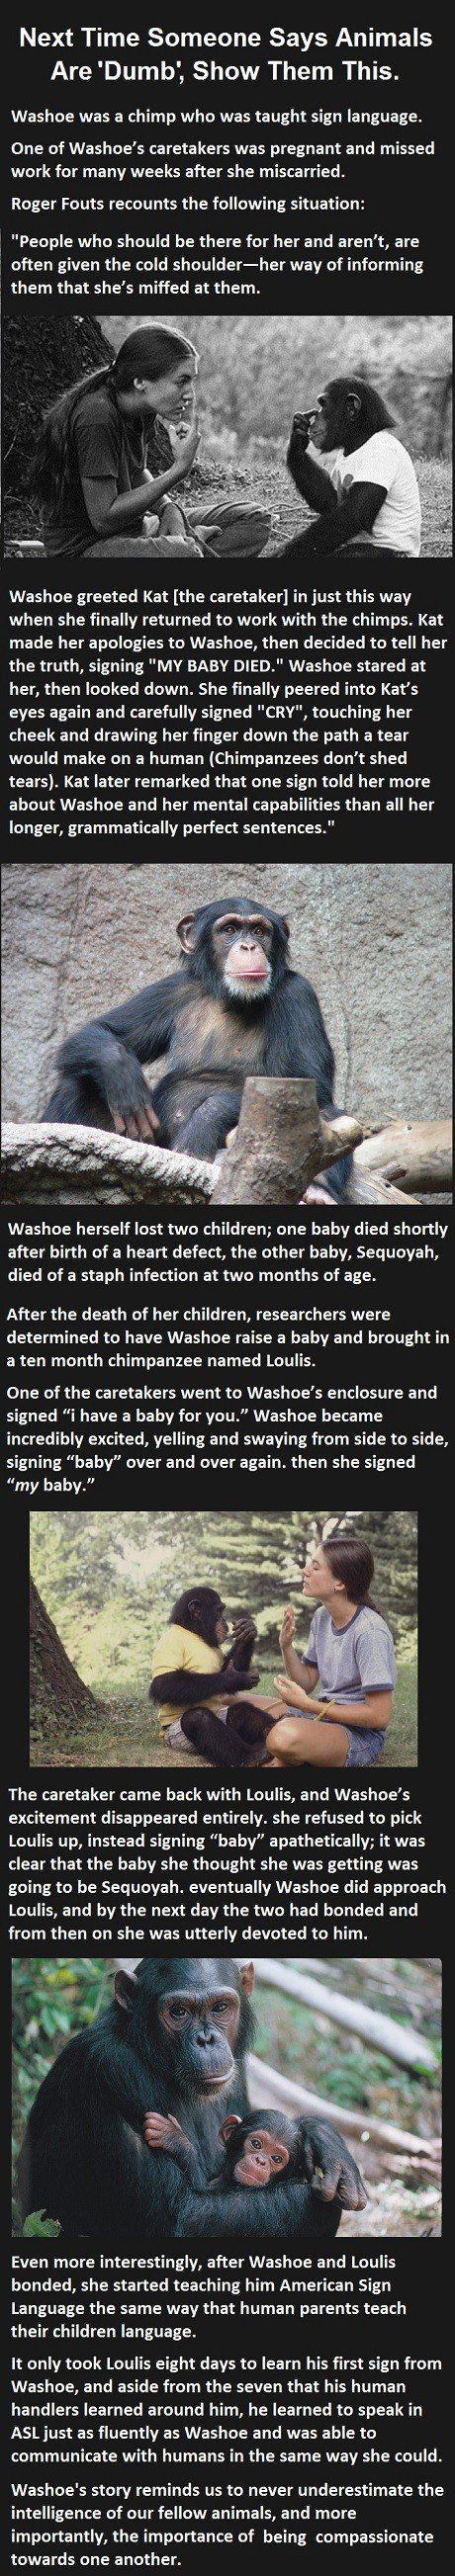 After reading this story you will understand how motherhood and loss are universal. Washoe, an exceptionally smart chimpanzee who knew sign language, was not happy with her caretaker Kat, who hadn't visited for some time. However, when Kat told her that Washoe had recently lost her baby, Washoe indicated signs for grief. She even made…